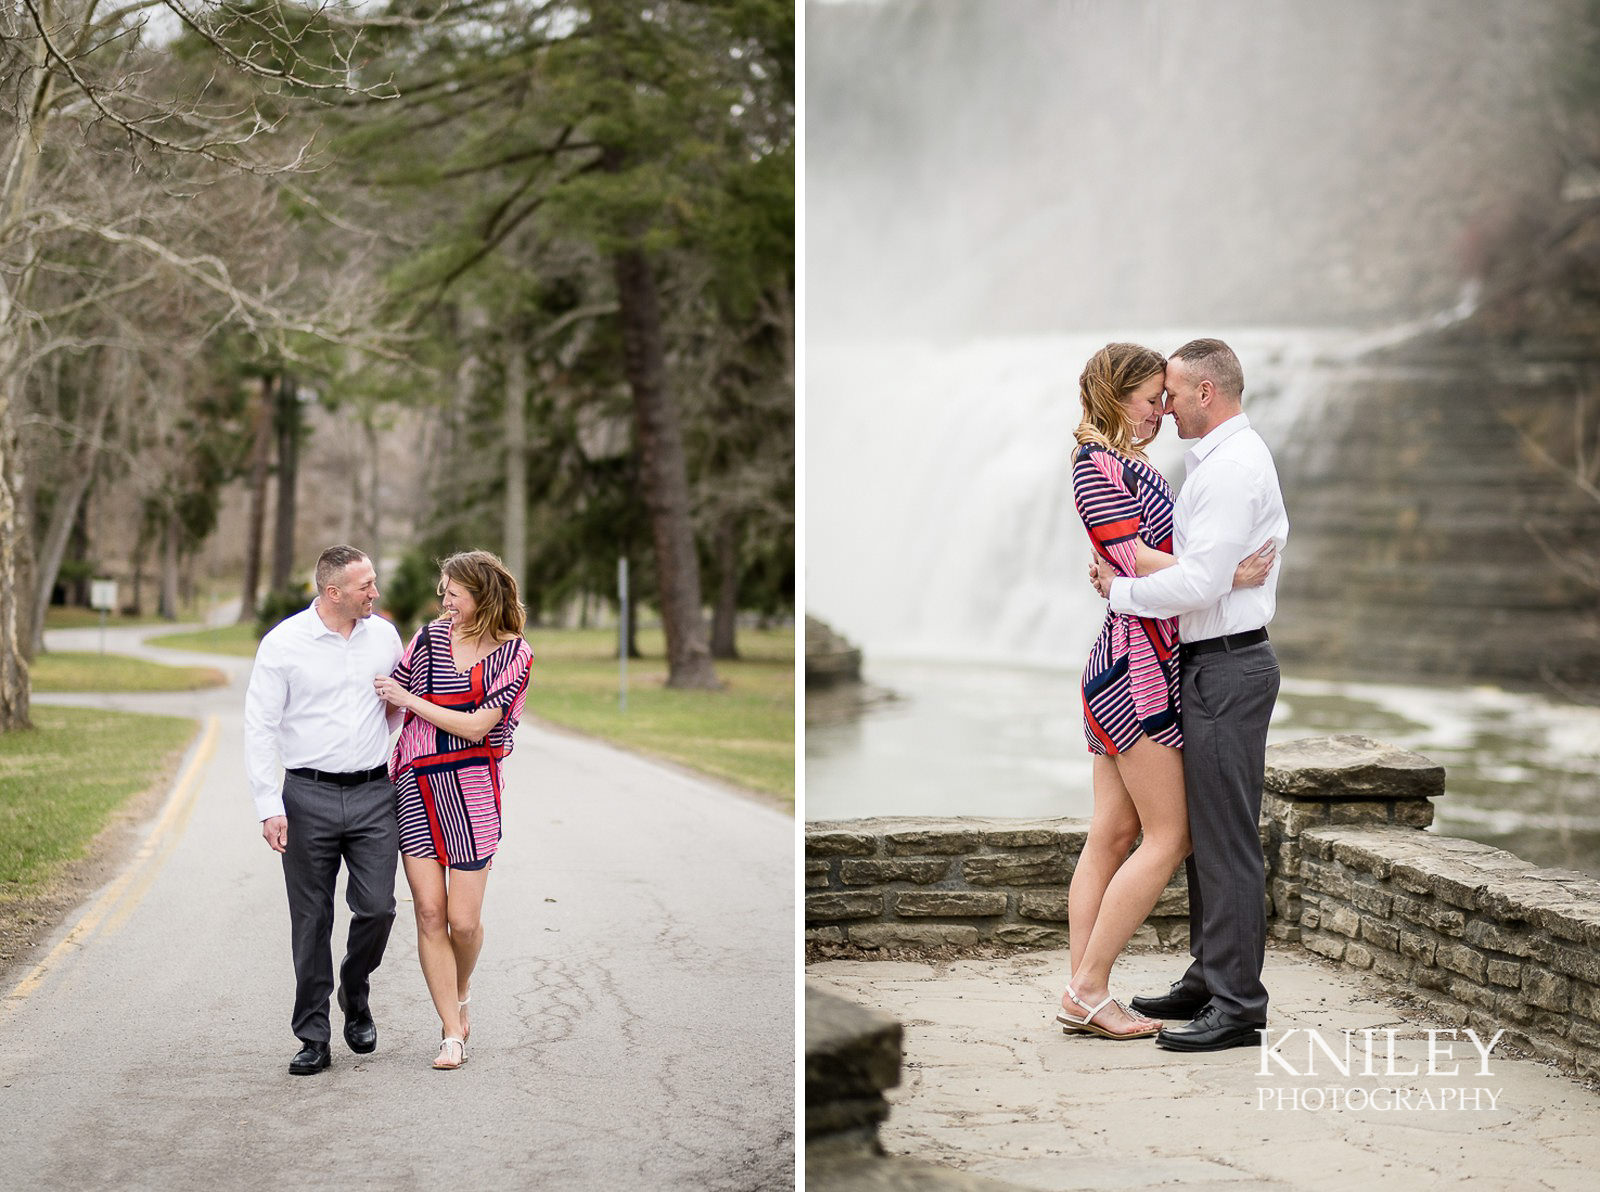 023 - Letchworth State Park engagement picture collage 7.jpg